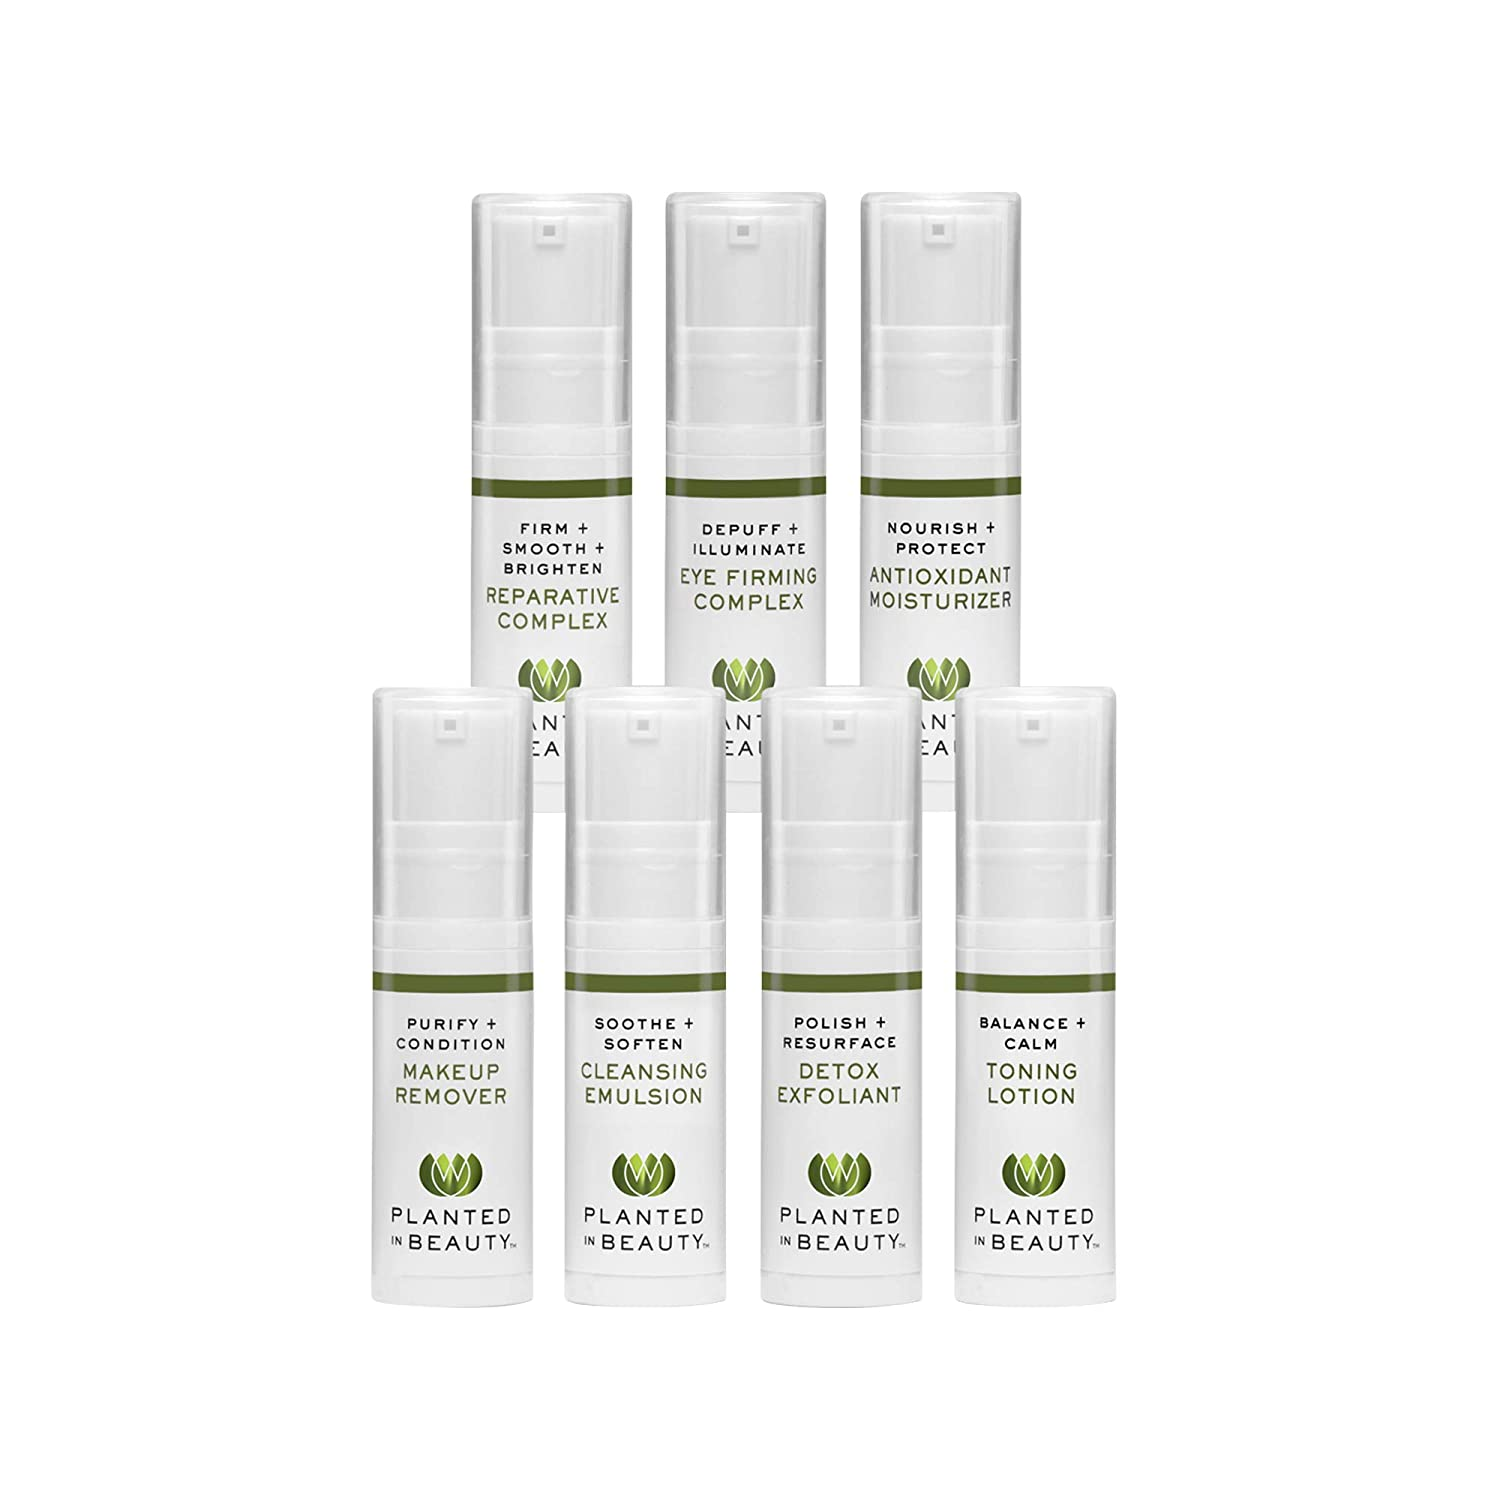 645d708e0d82 Organic Skin Care Travel Kit - Luxury Natural Face Cleansing Oil, Wash,  Exfoliator, Toner,...